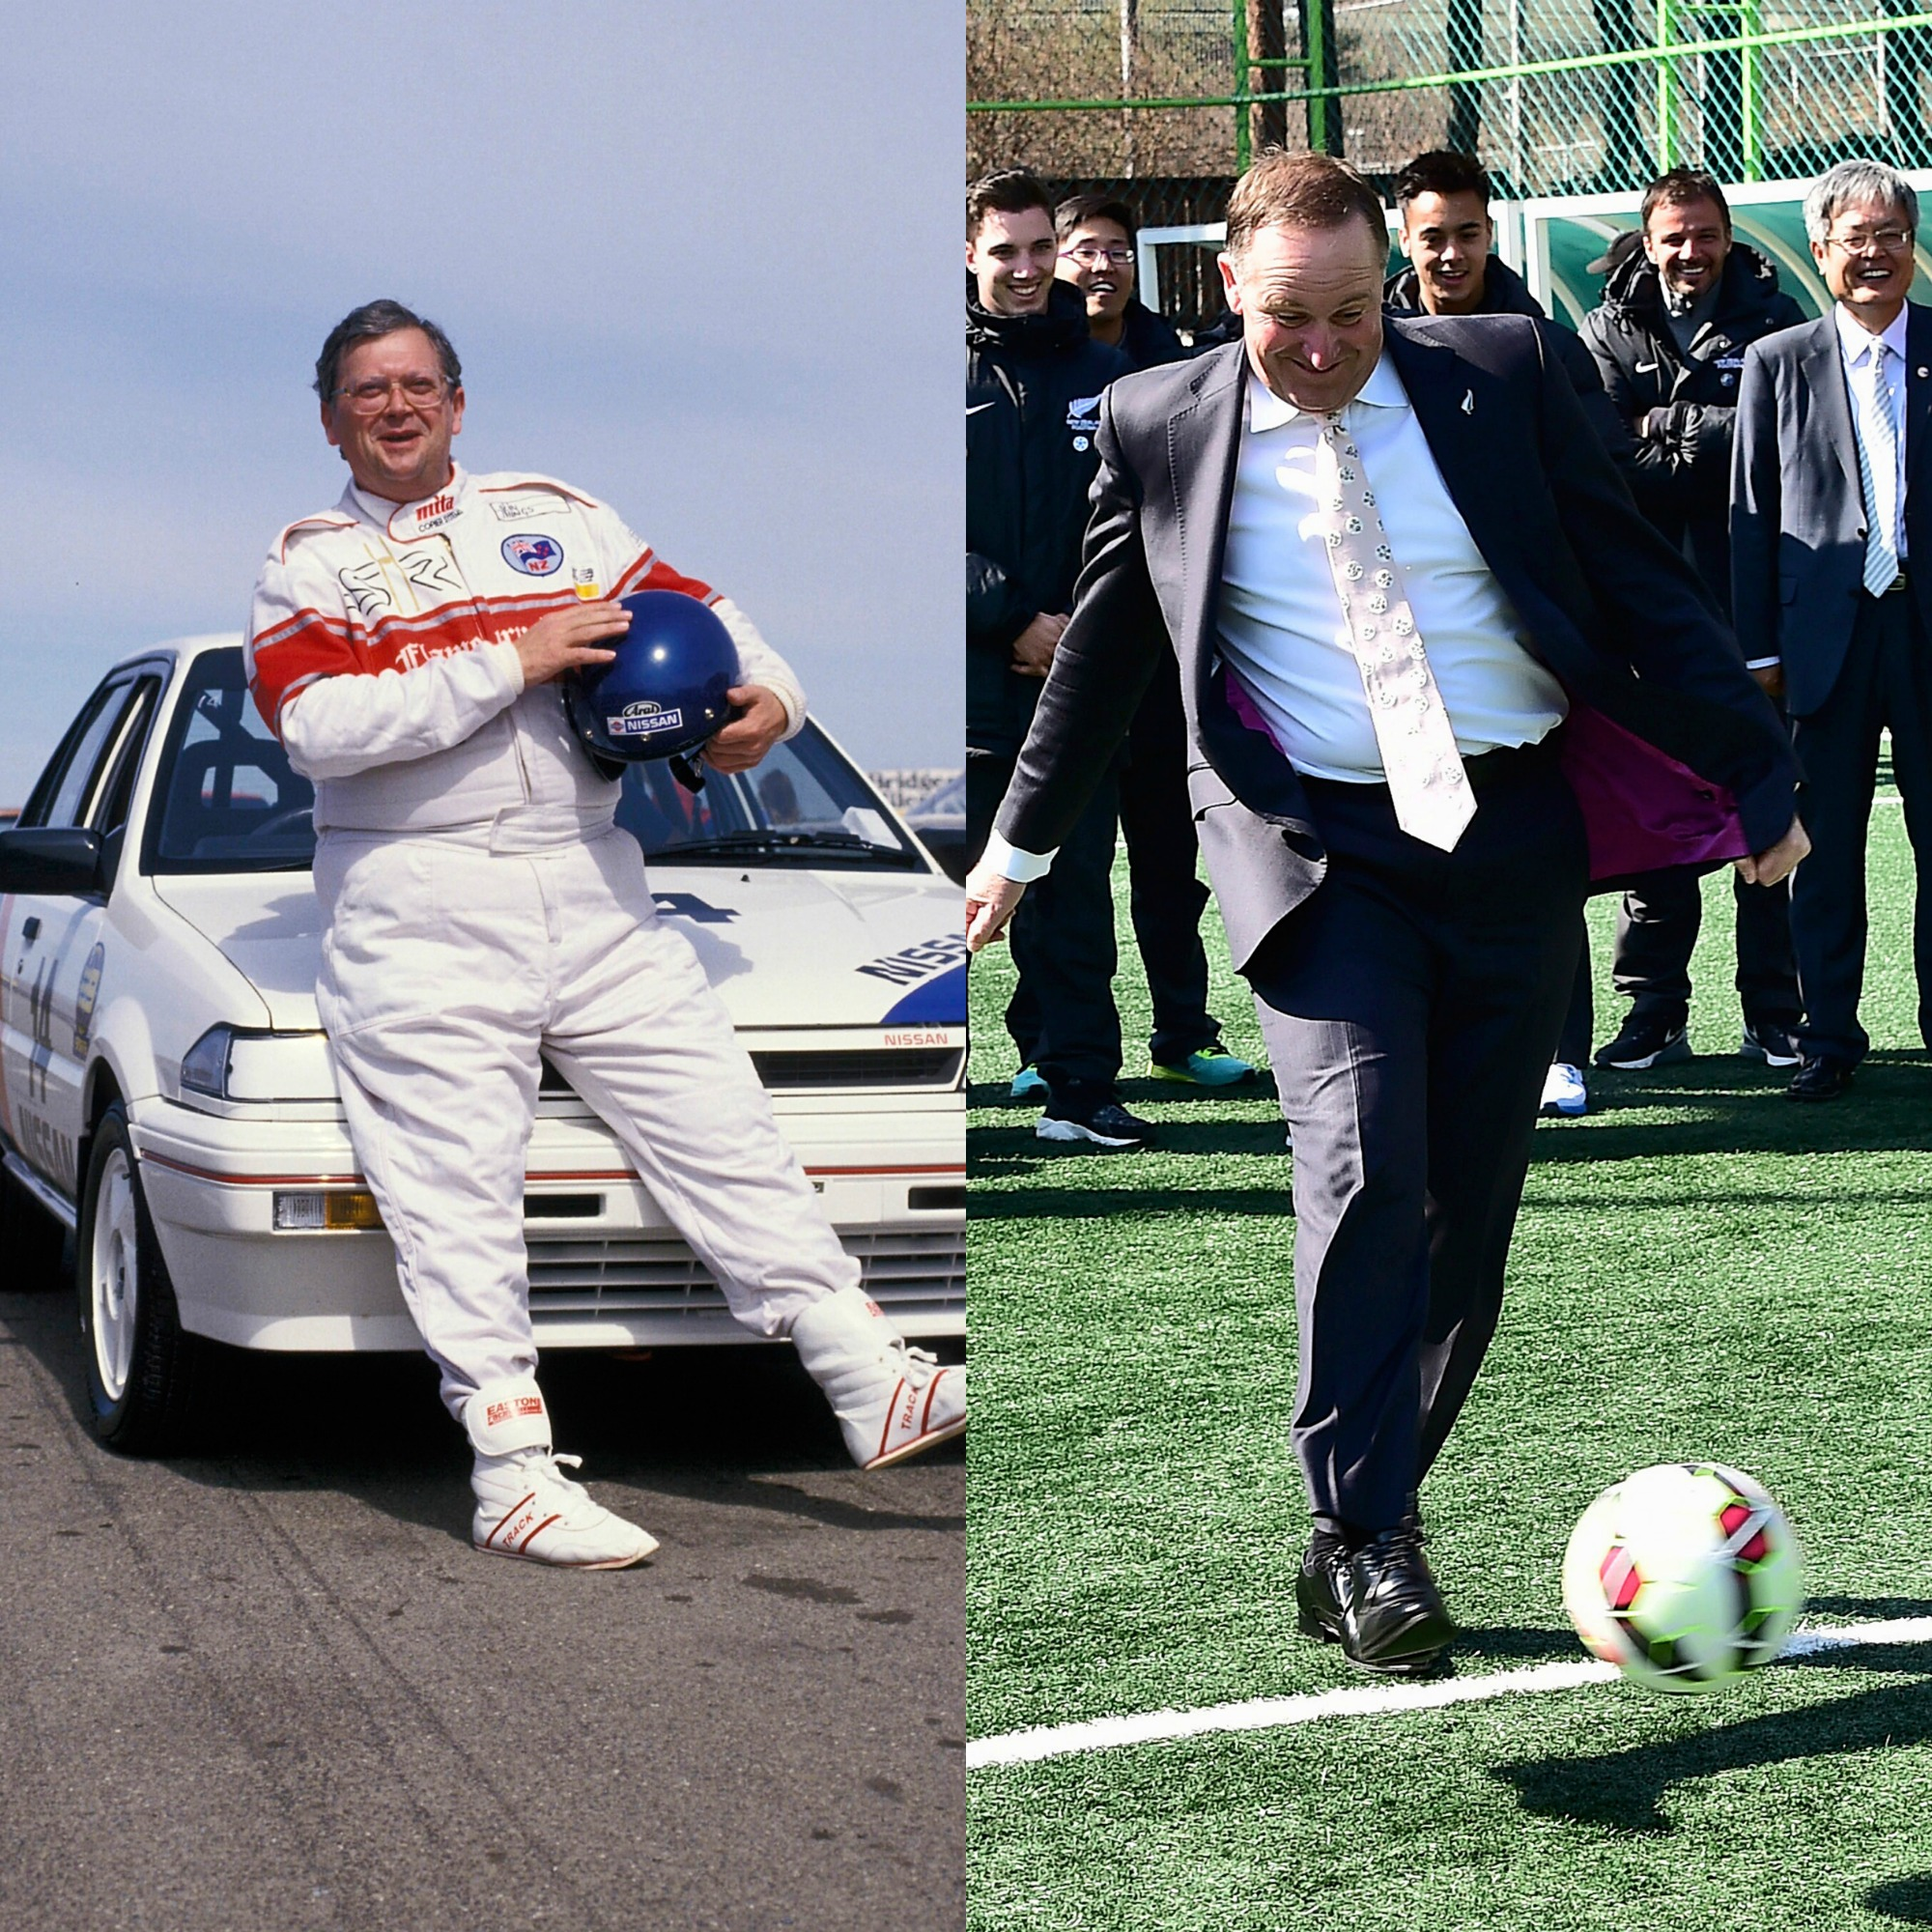 Above left: In Seoul to mark the signing of the New Zealand-South Korea Free Trade Agreement last March. Key shows off his fancy footwork at a soccer clinic held by the All Whites for local students. Above right: Prime Minister David Lange lines up for the Celebrity Race at the 1987 Adelaide Formula One Grand Prix.